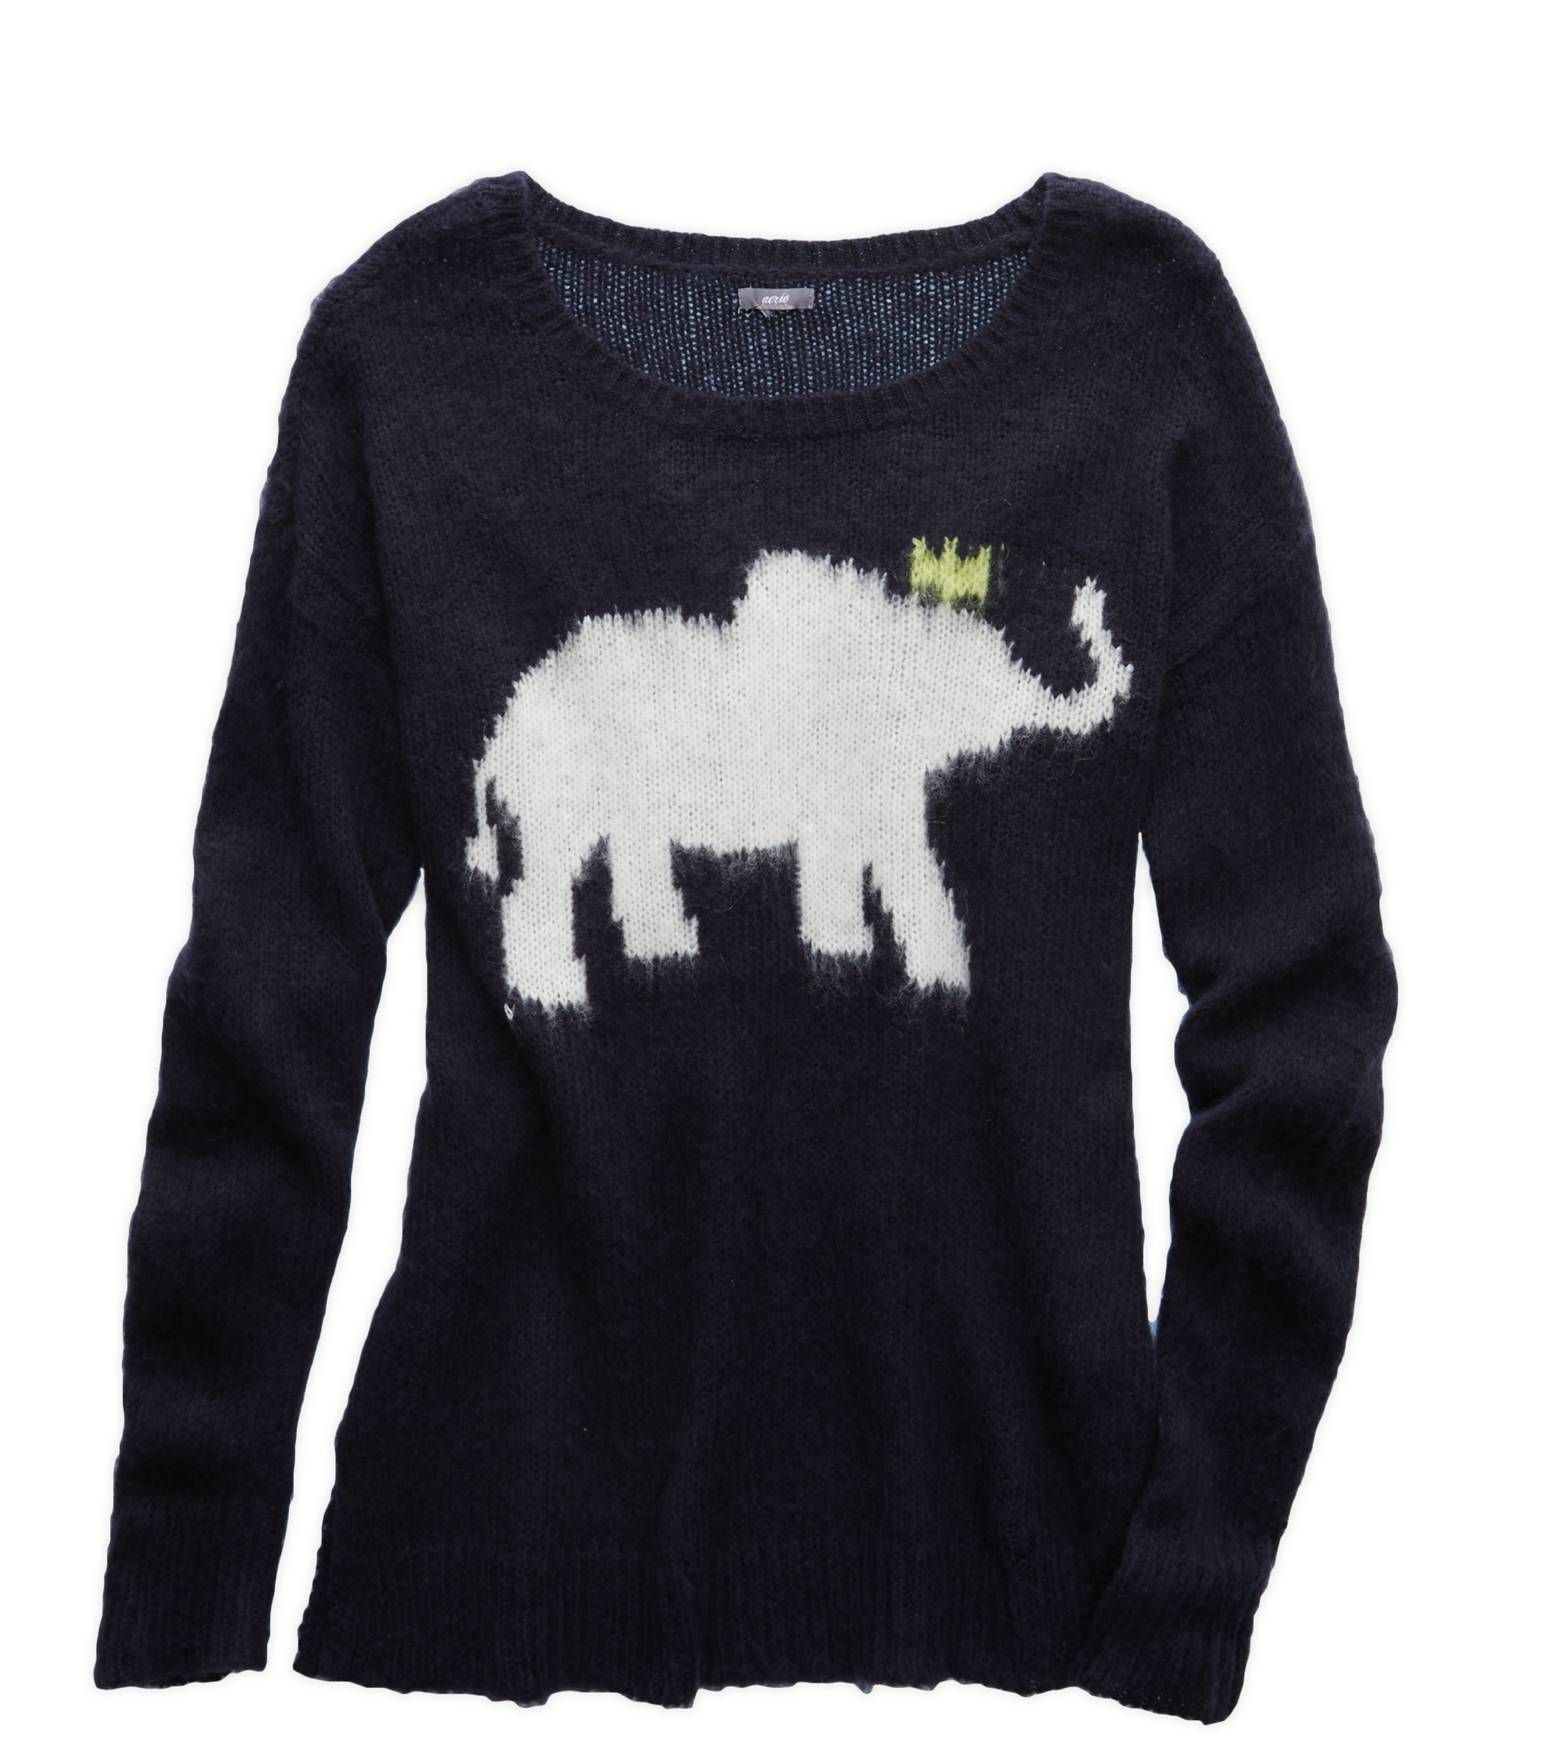 Royal Navy Aerie Graphic Sweater - Cute and cozy! #Aerie | Clothes ...